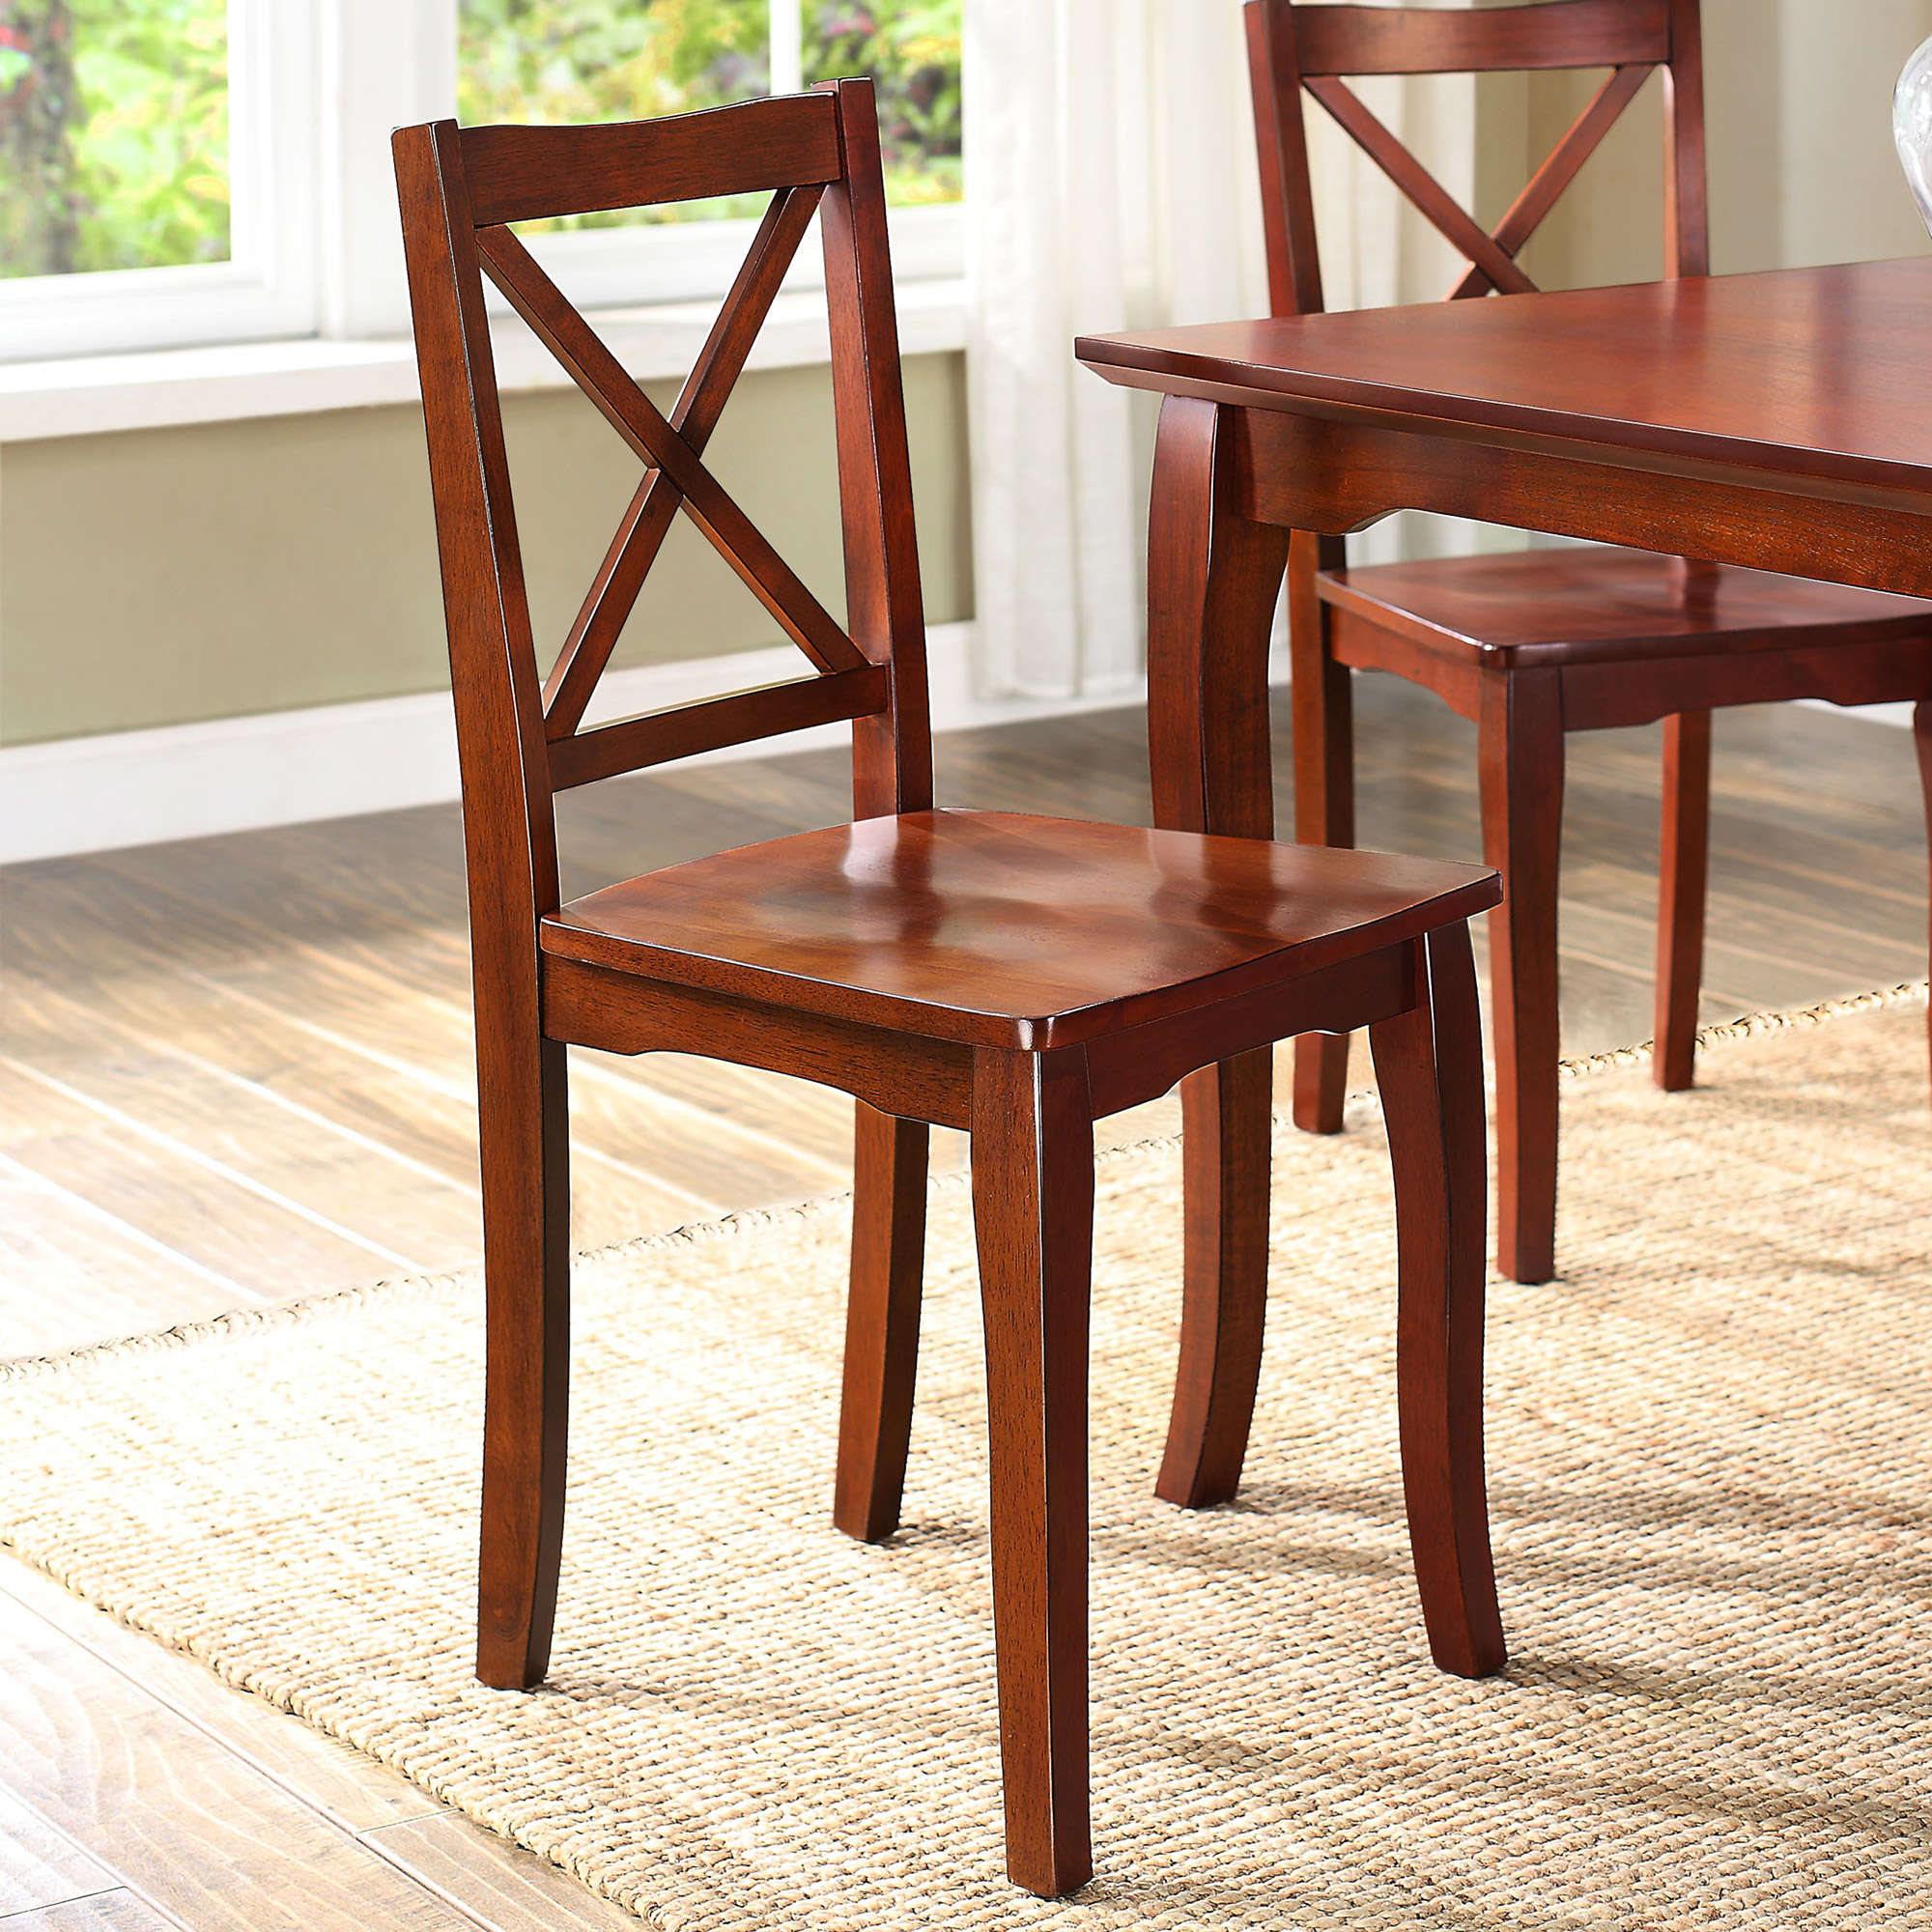 Better Homes and Gardens Ashwood Road Wood Dining Chair, Set of 2